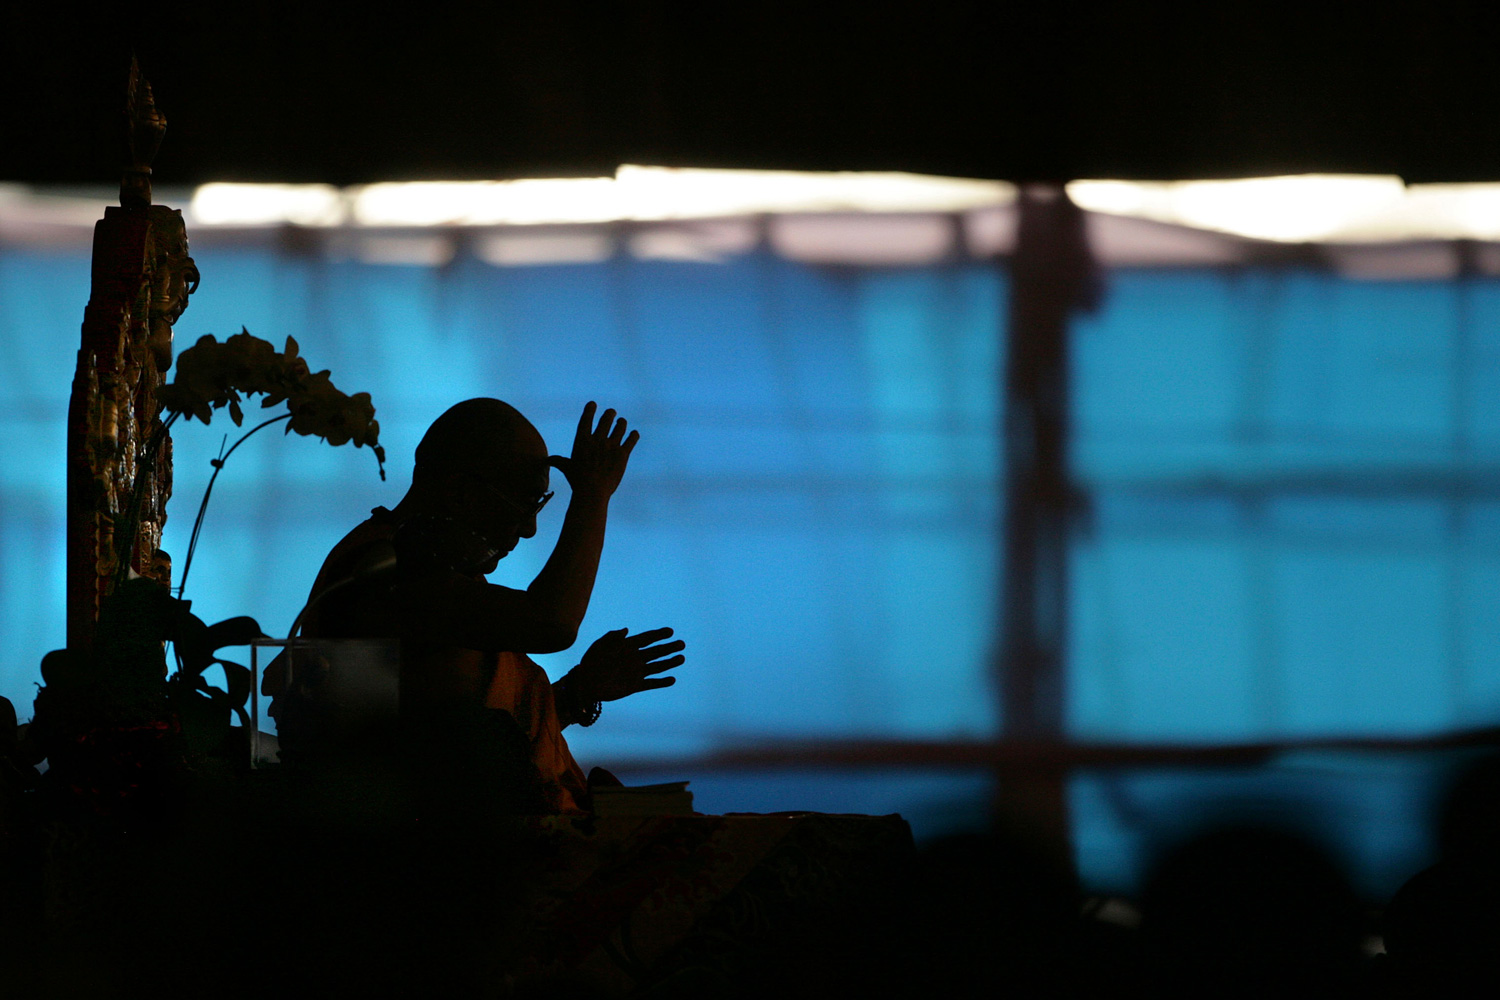 January 4, 2012. Tibetan spiritual leader the Dalai Lama is silhouetted as he teaches an assembly of monks and devotees during the Kalachakra Buddhist festival in Bodh Gaya, Bihar, India. Bodh Gaya is believed to be the place where Buddha attained enlightenment.